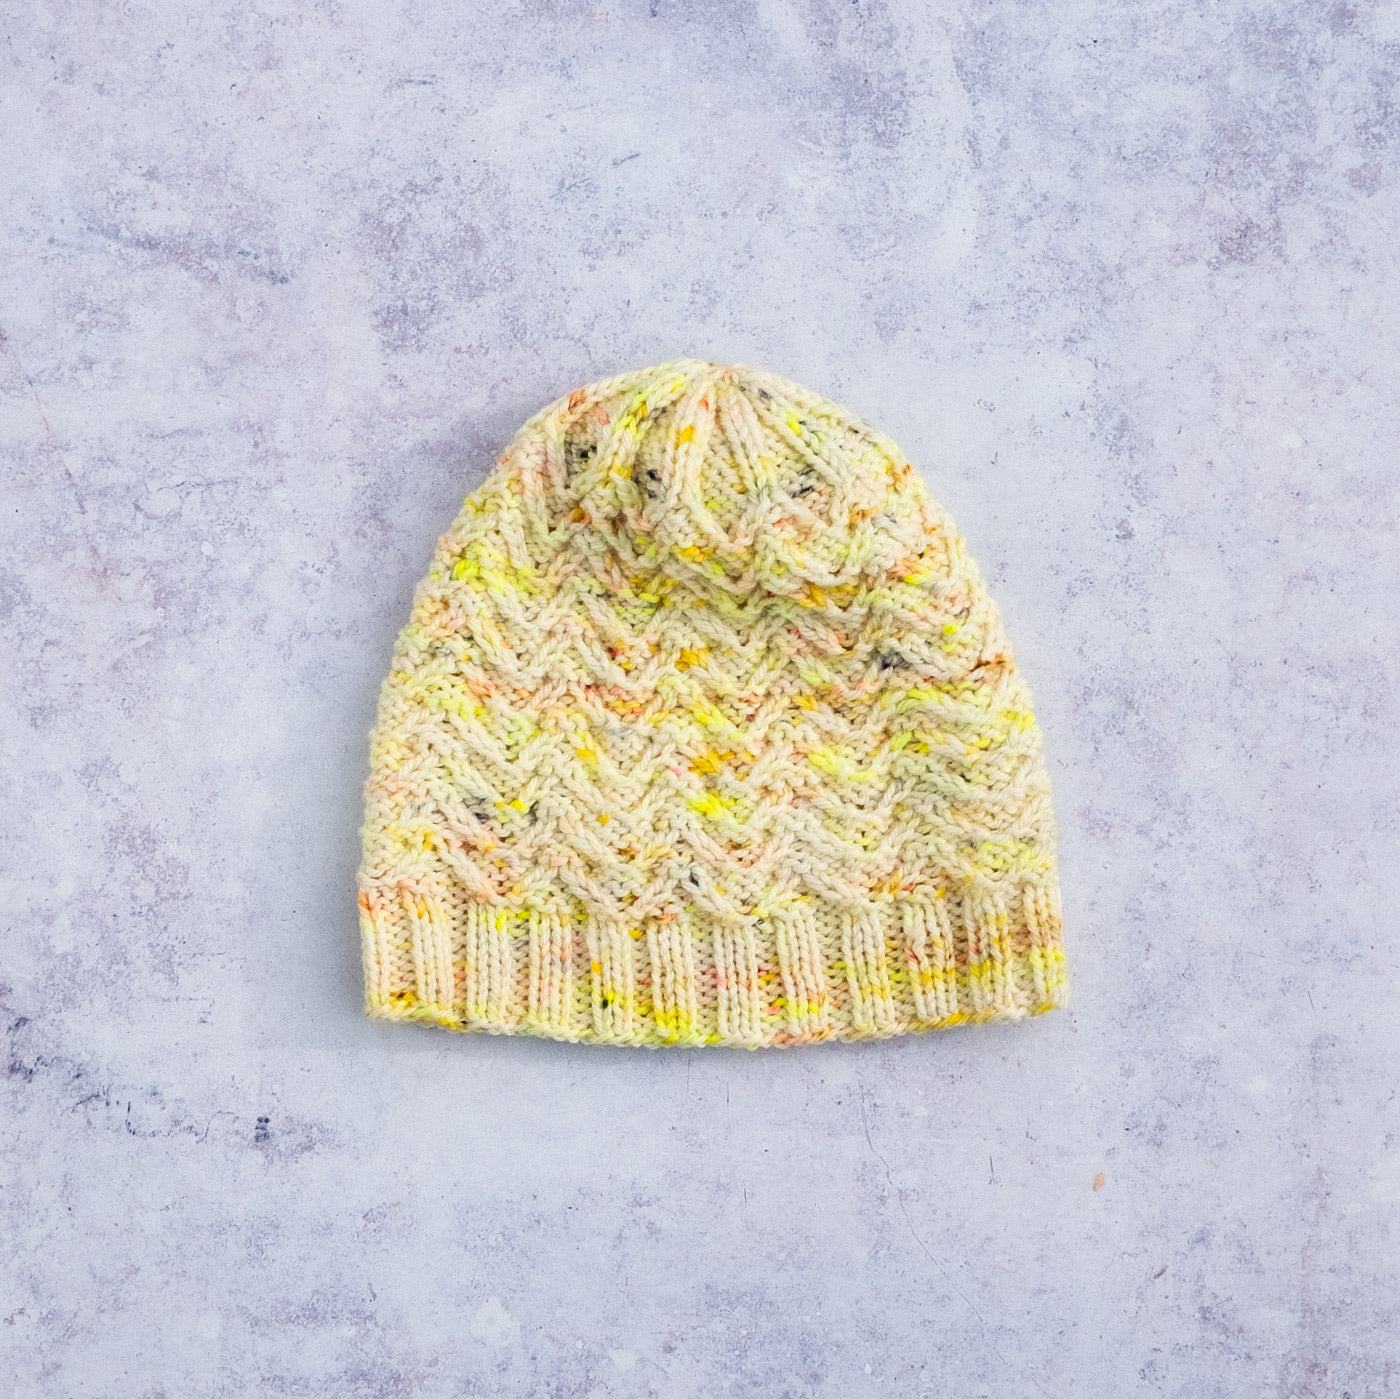 Handknit hat laying flat, it has textured stitches in white yarn speckled with neon yellow, gold and flecks of coral here and there. The crown of the hat has in interesting decreasing pattern, the texture of the stitches come together a little like a flower motif.